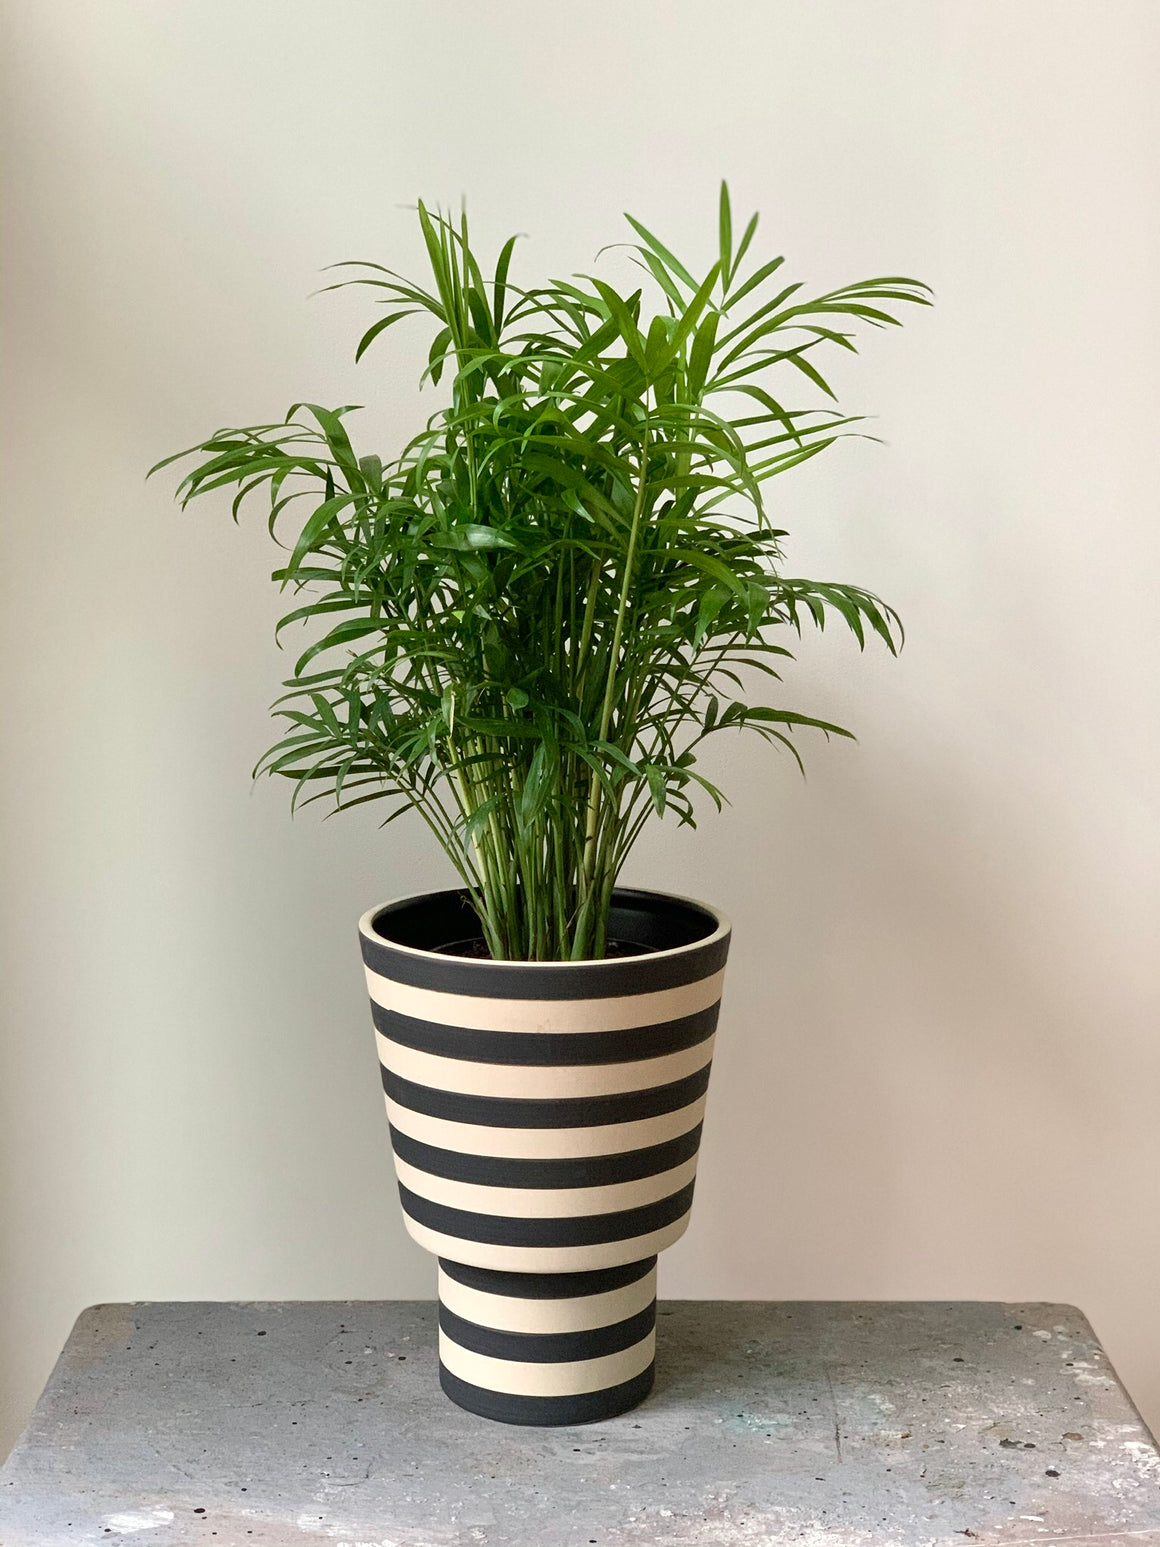 Striped Parlor Palm